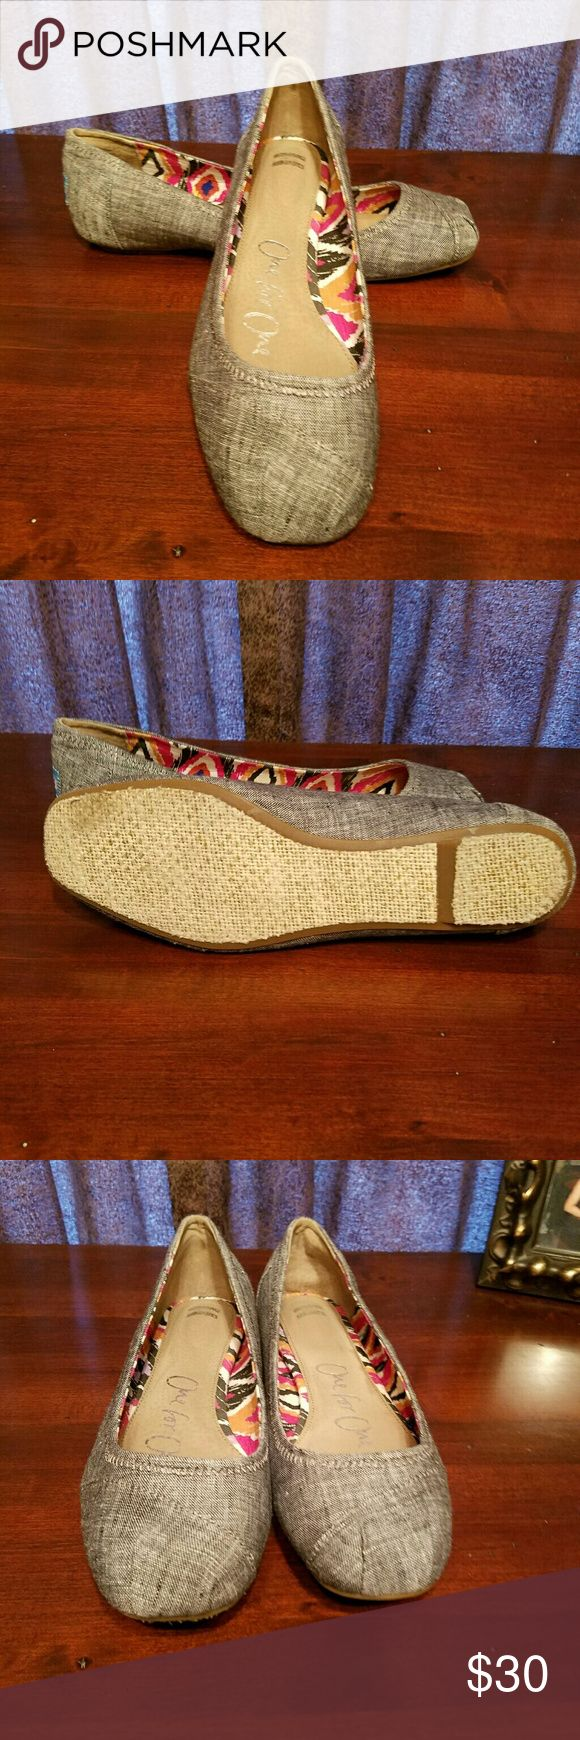 Toms Ballet Flats Toms ballet flats size 10.  Worn only a few times.  I excellent condition Toms Shoes Flats & Loafers